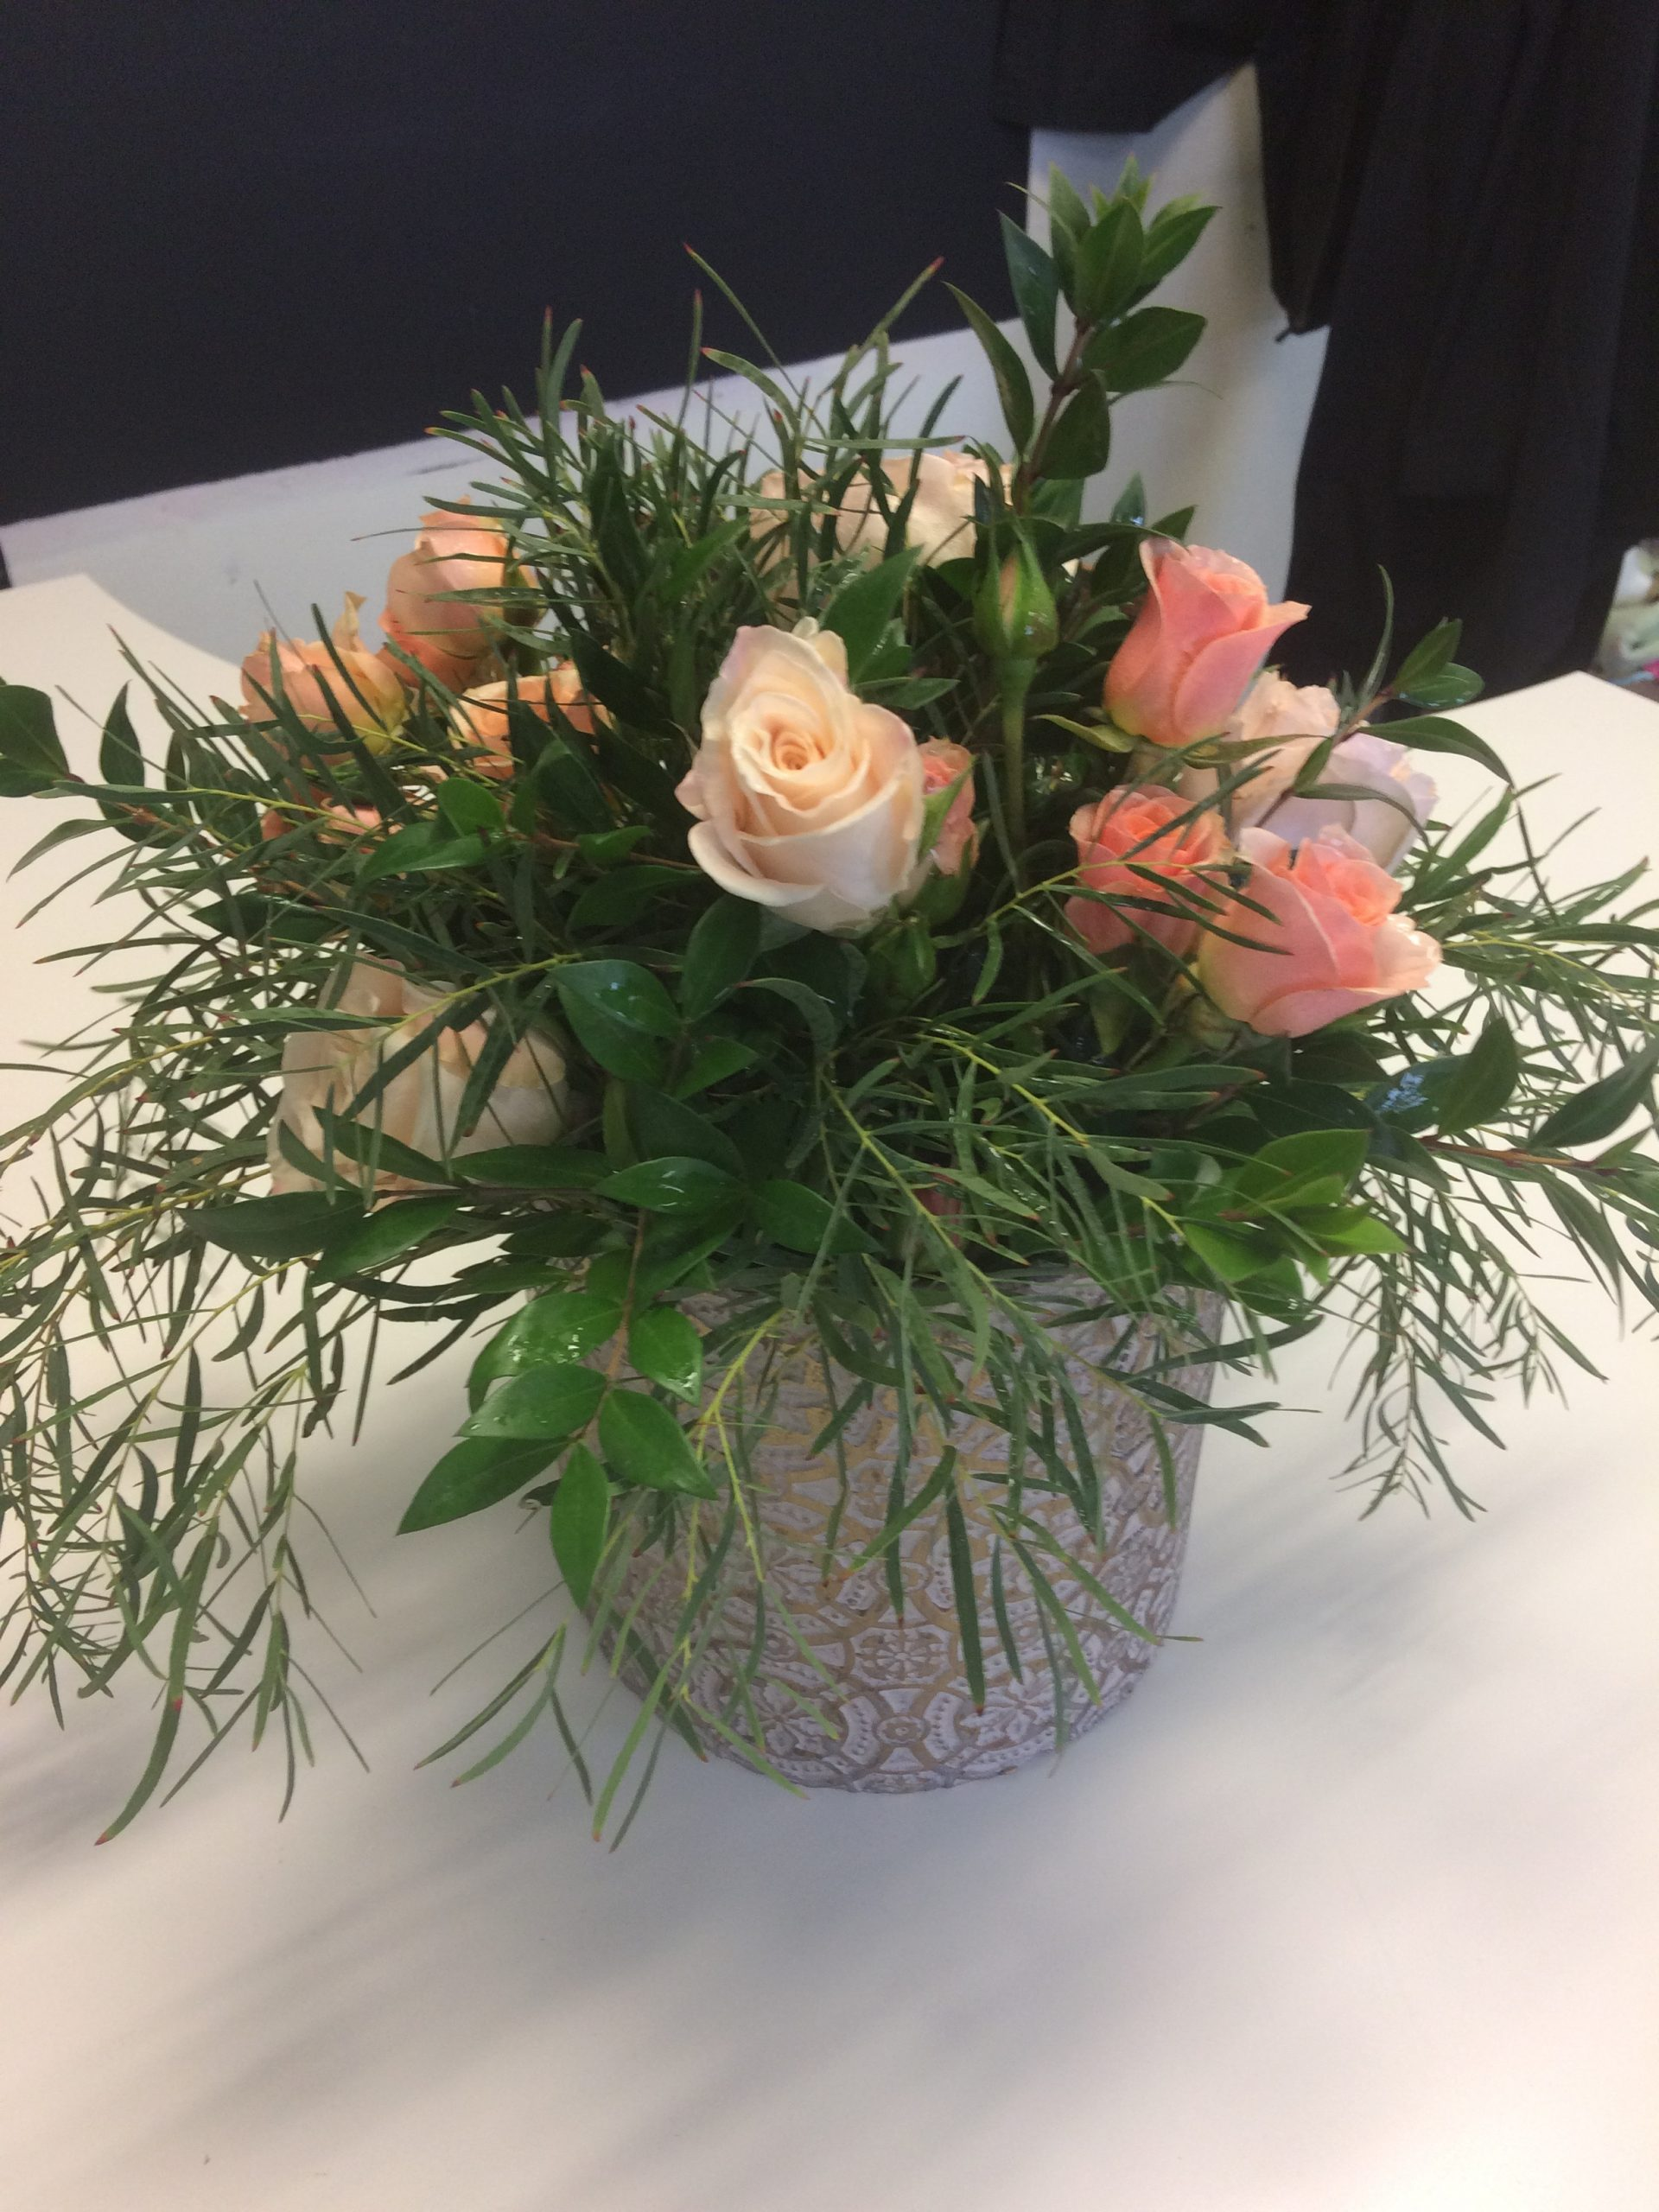 Pink and peach coloured roses with ruscus and rosemary in shabby chic ceramic vase